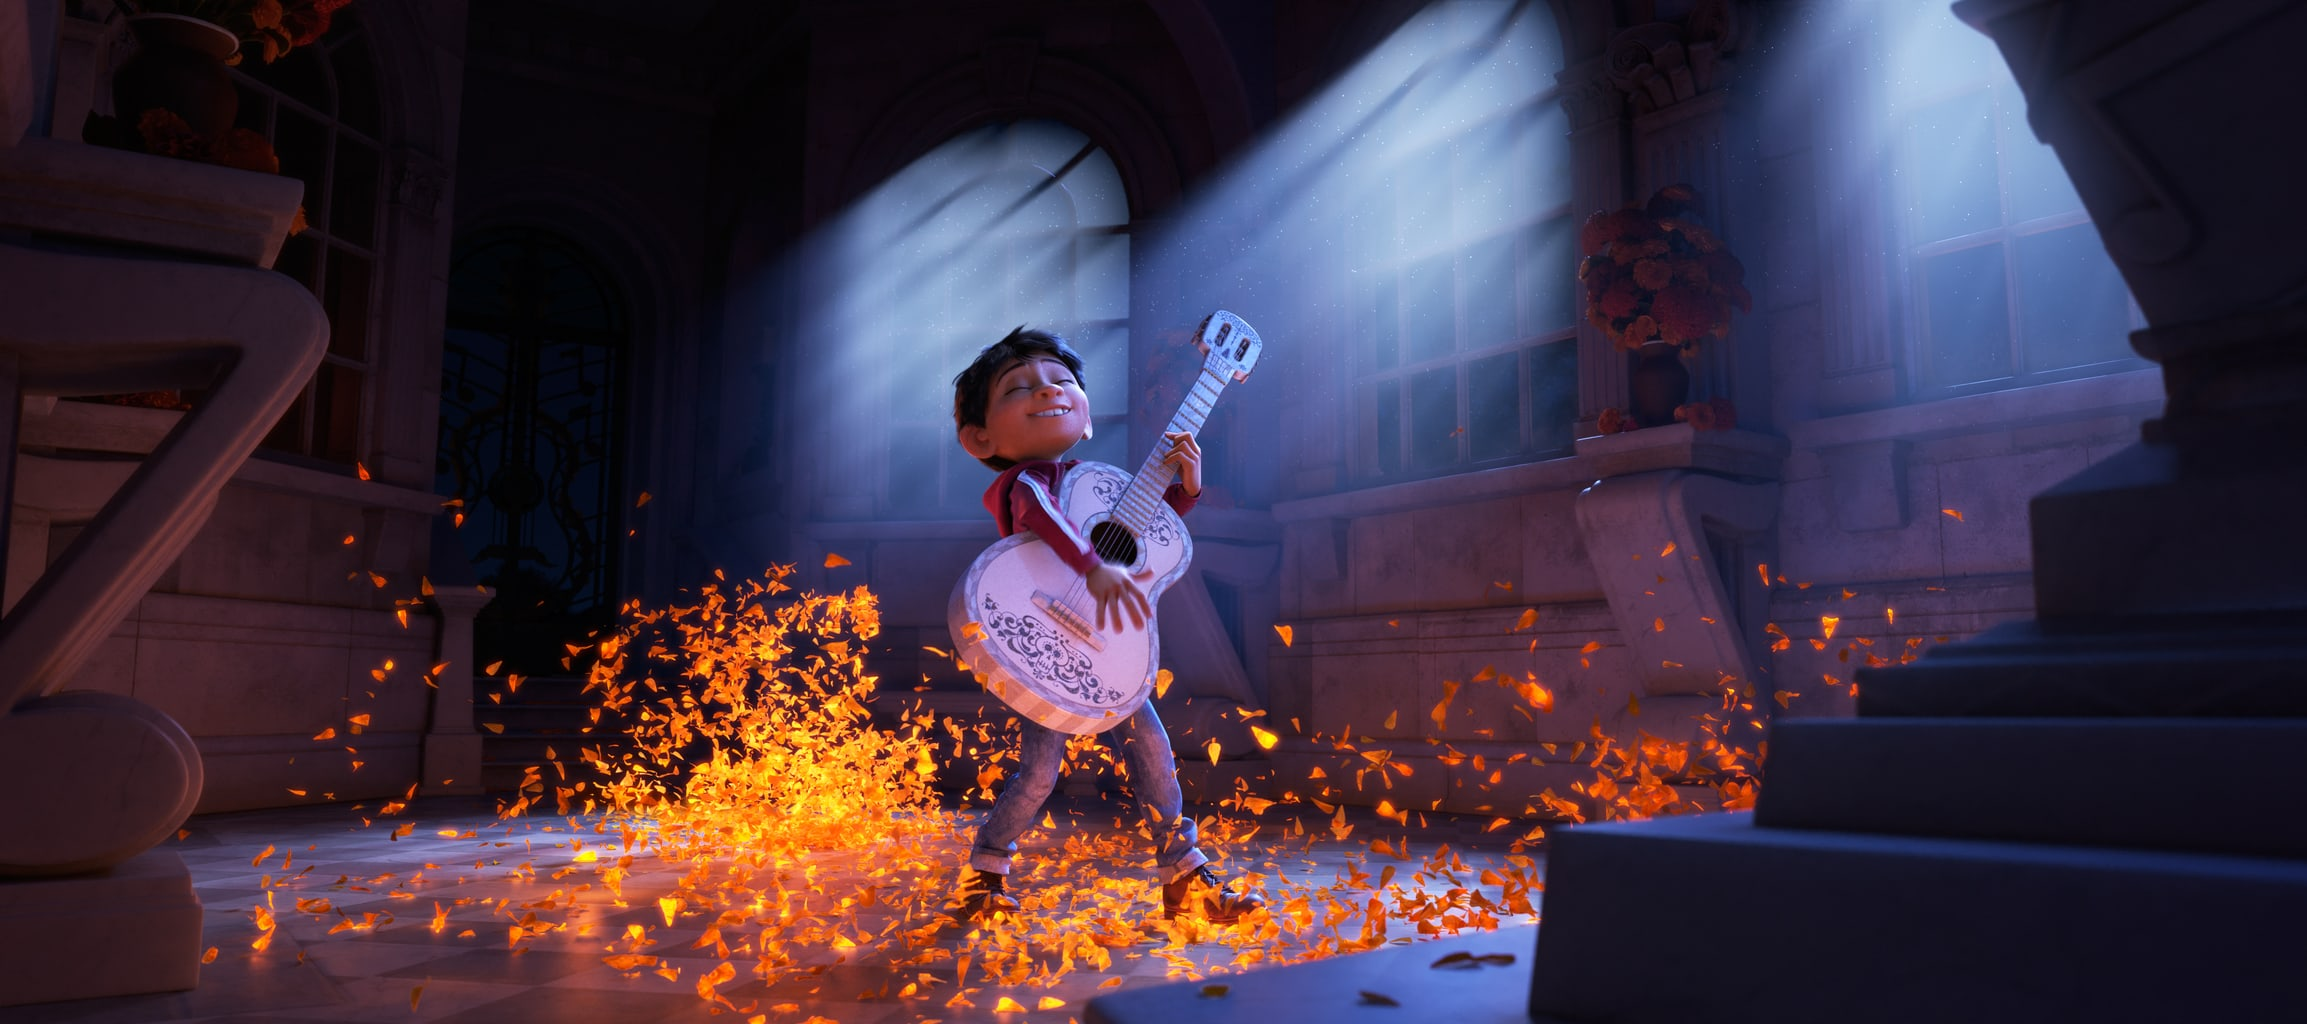 How long have we been waiting for Disney Pixar's Coco? I can tell you it's been two years since it was announced at D23, and it's been in the making for even longer!